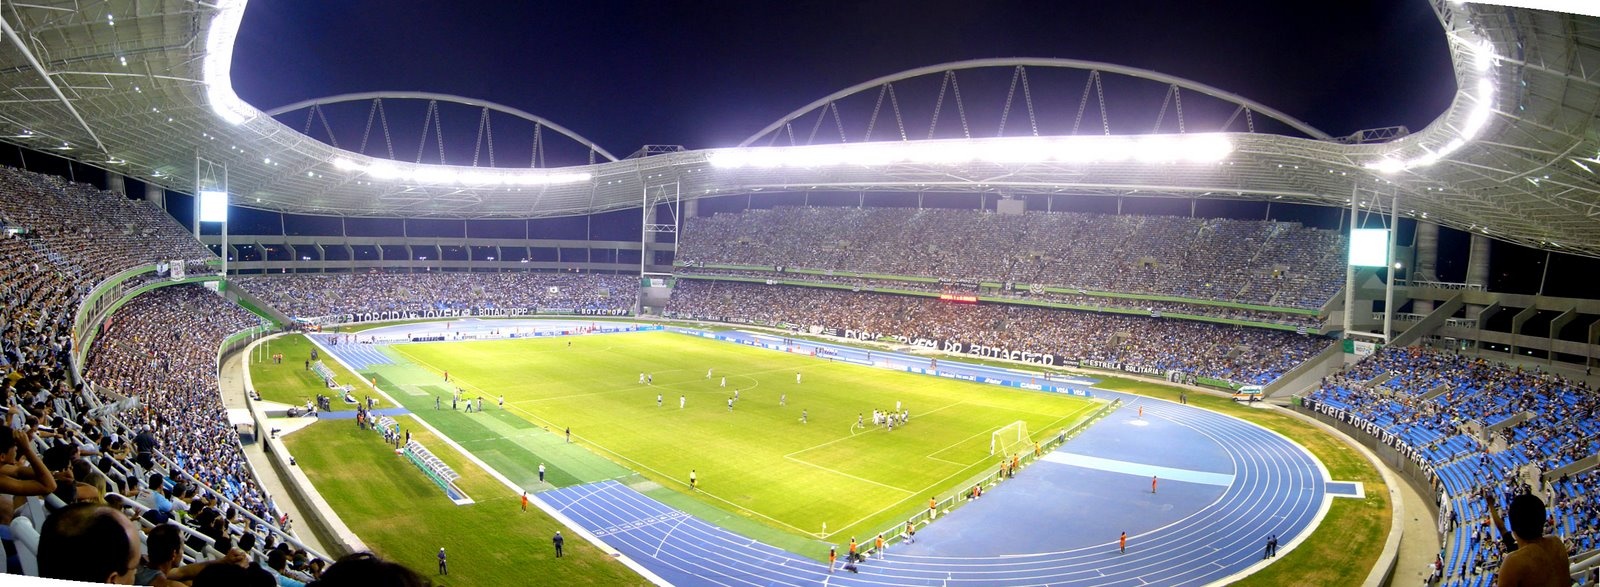 João Havelange Stadium at night